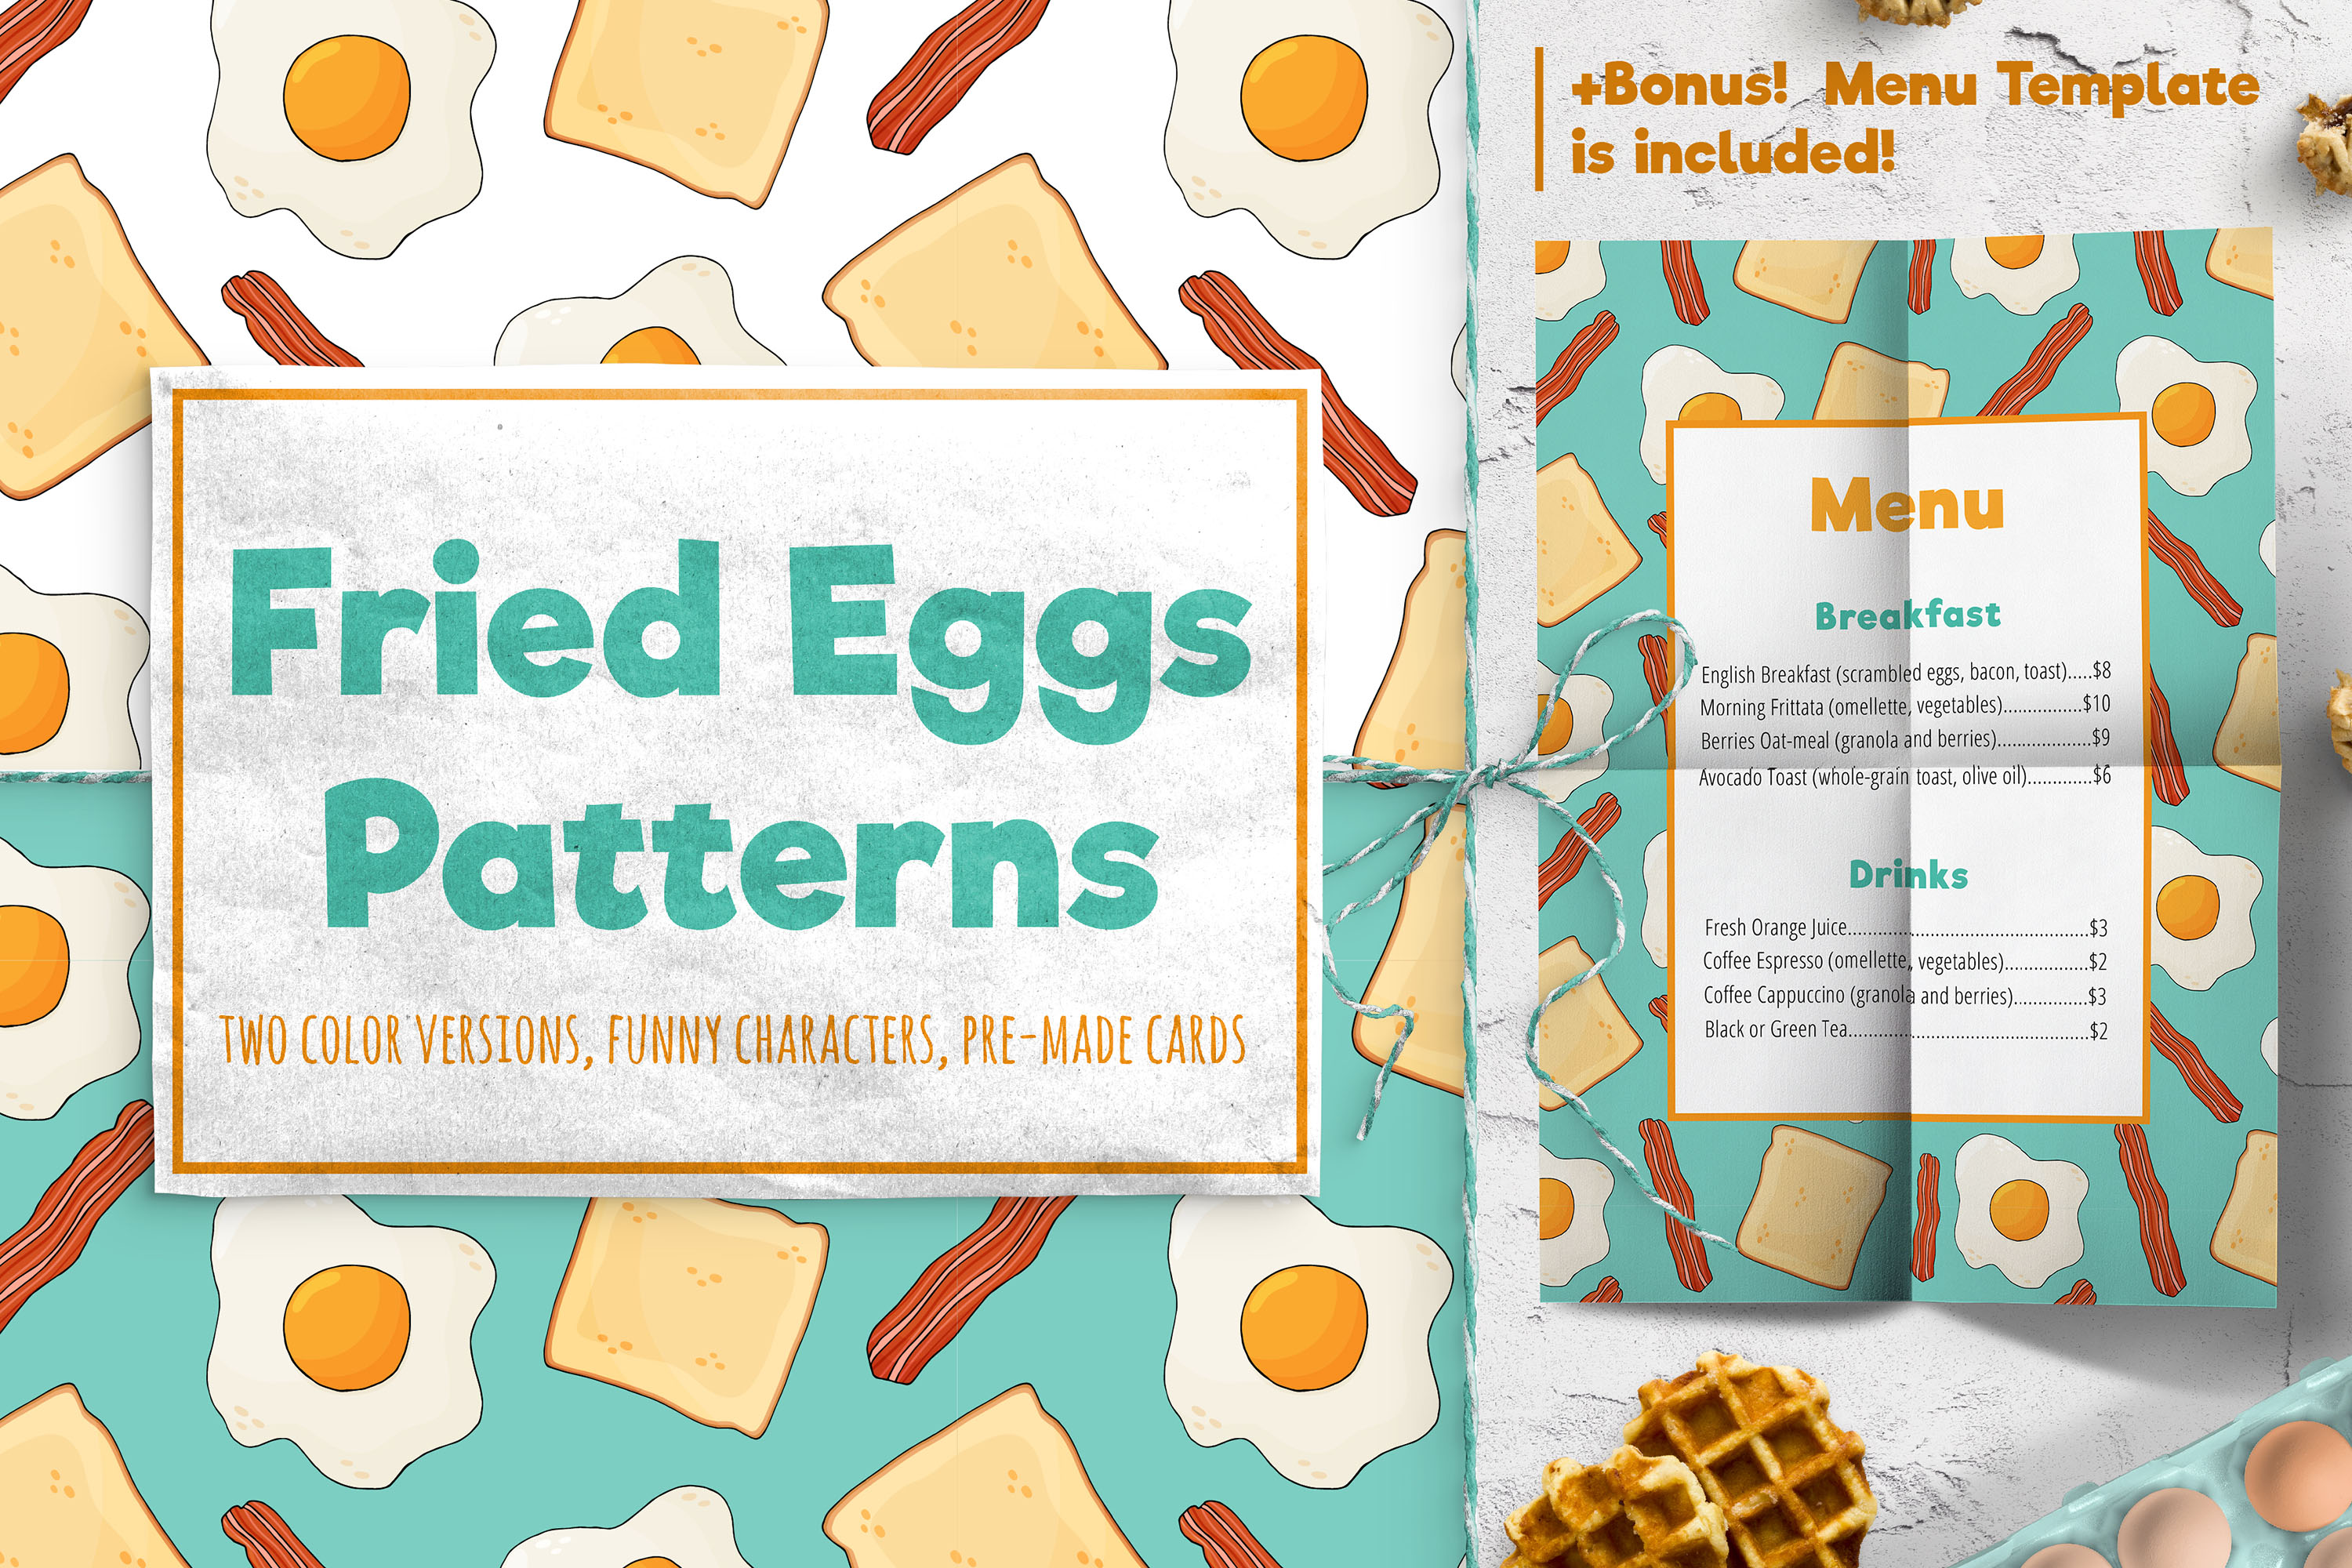 Fried Eggs Patterns example image 1